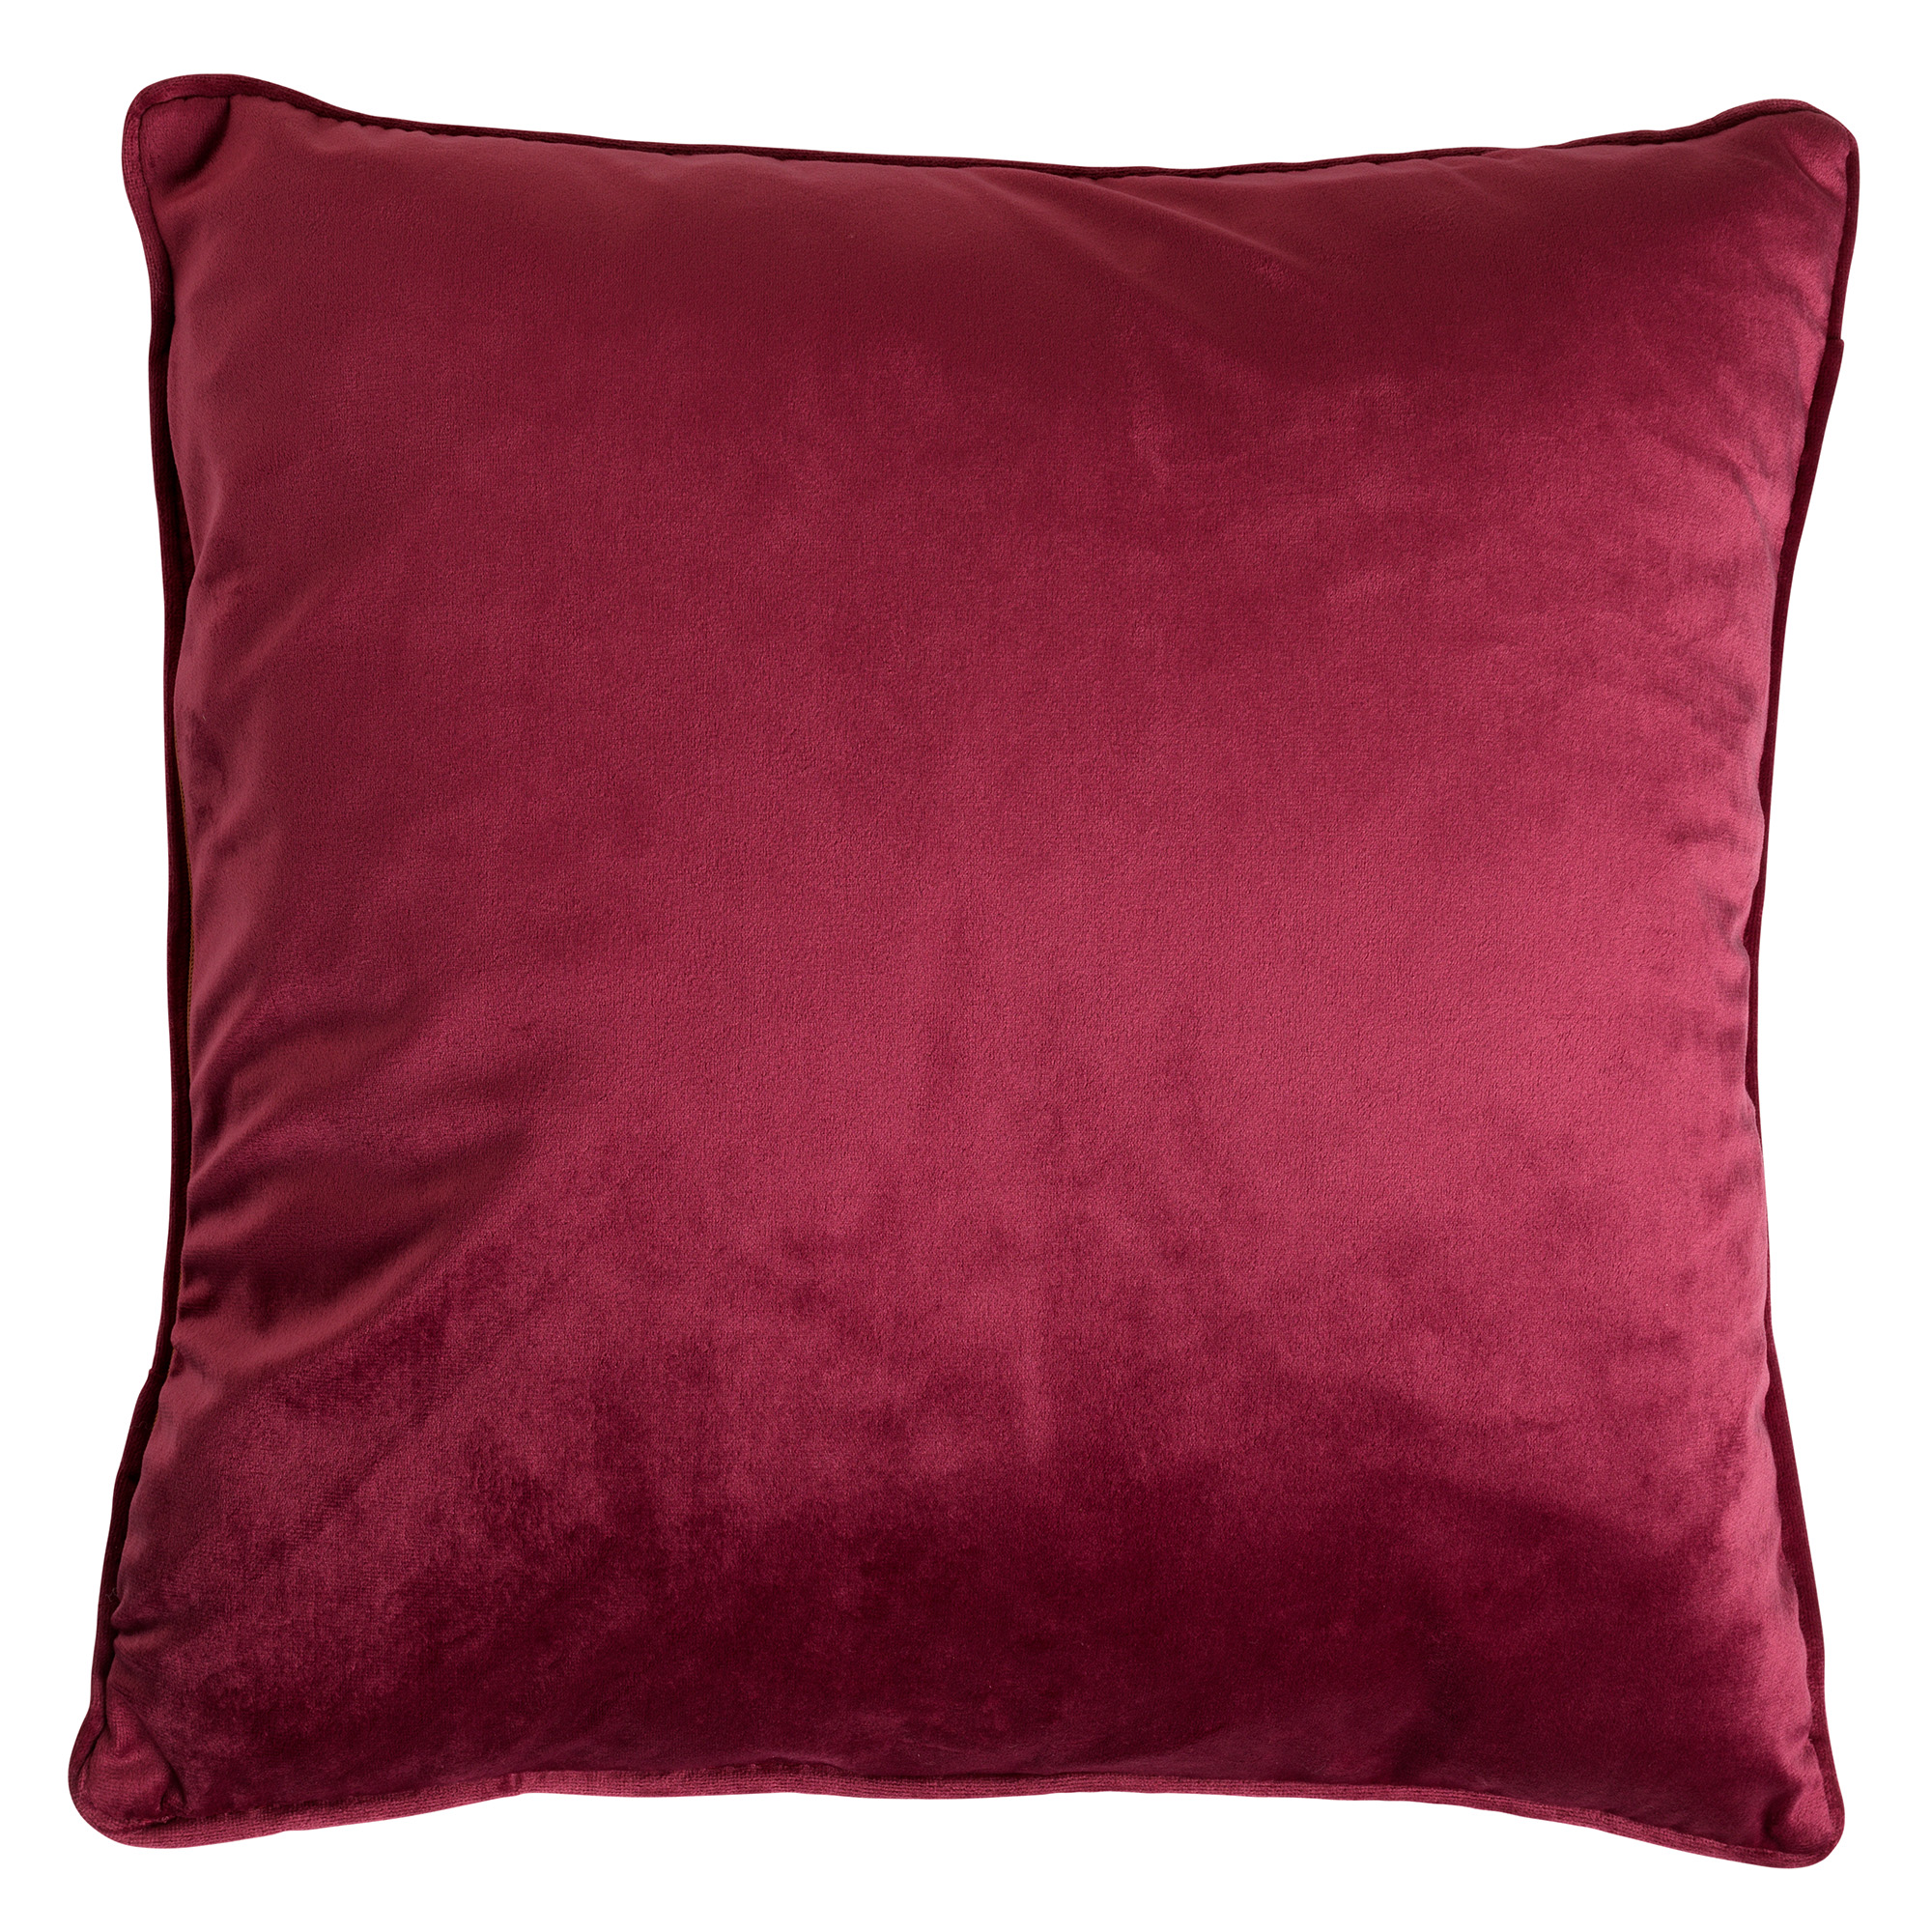 FINN - Kussenhoes velvet Red Plum 60x60 cm